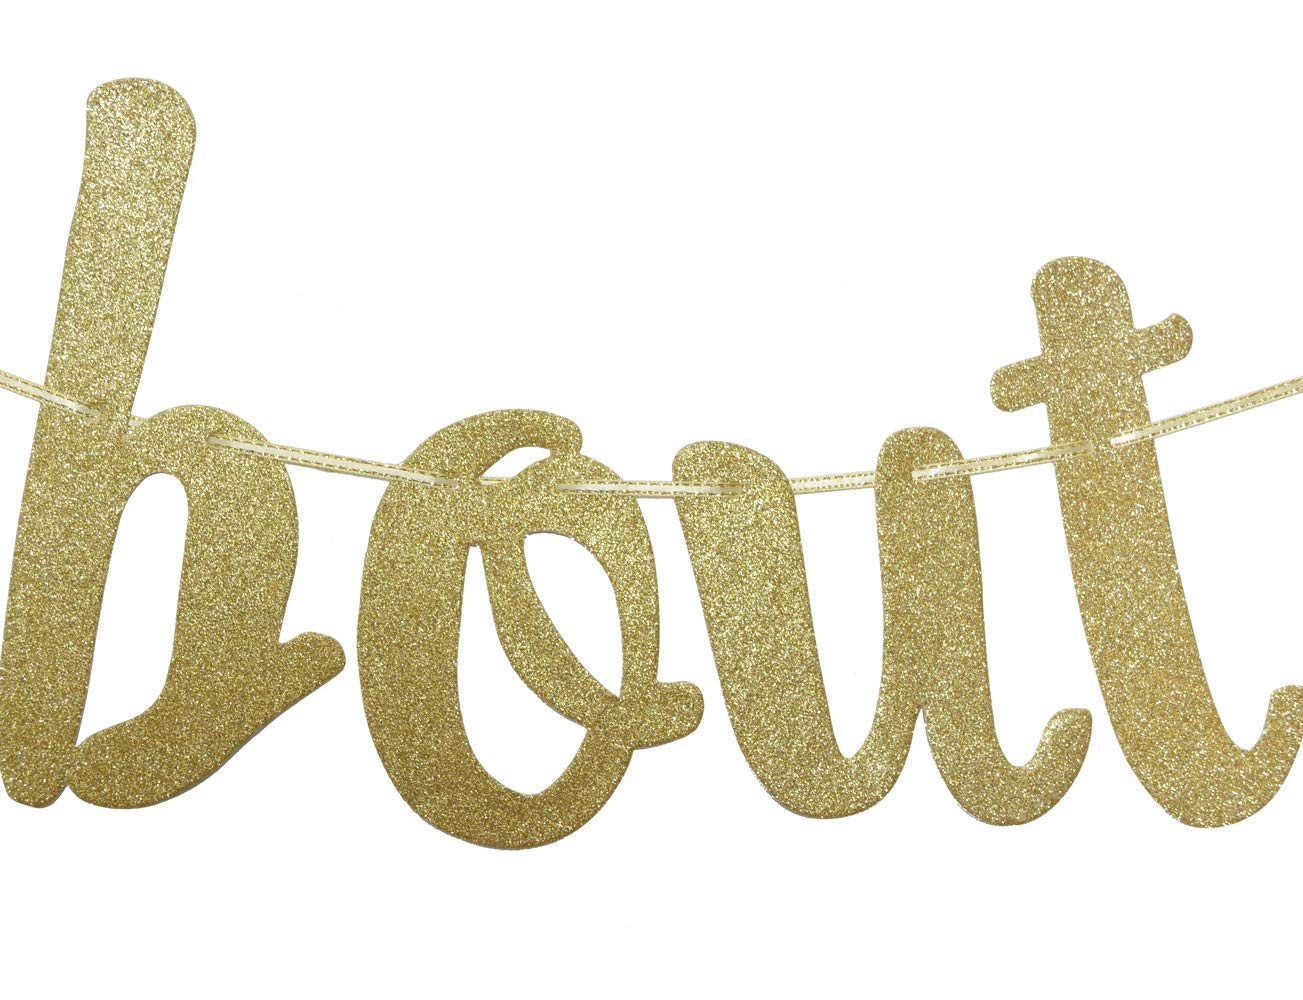 Taco Bout A Baby Gold Glitter Banner Sign Garland for Mexican Fiesta Themed Baby Shower Party Decorations Supplies Cursive Bunting Photo Booth Props